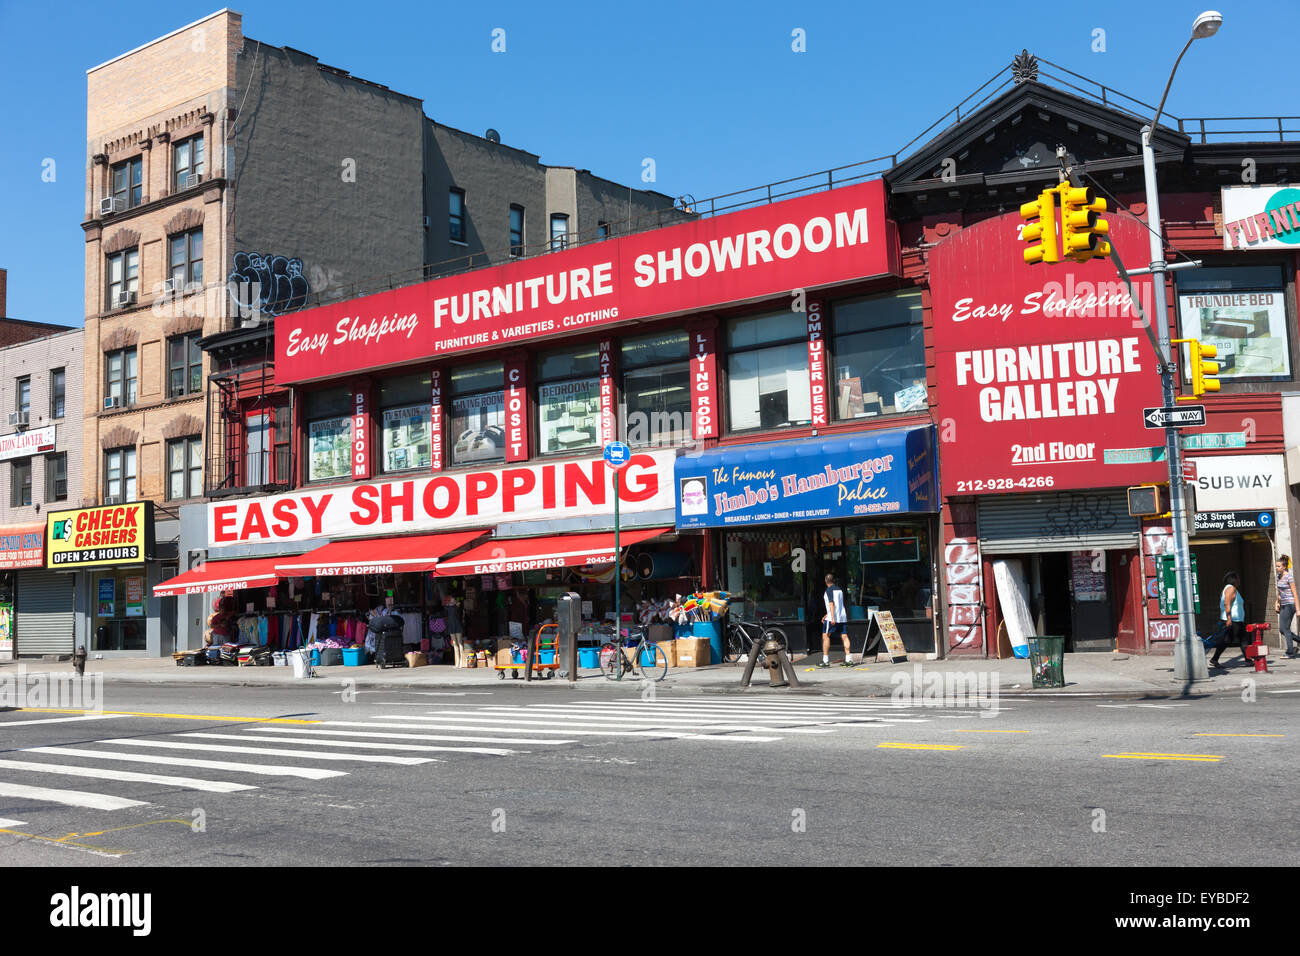 easy shopping furniture store in the washington heights section of